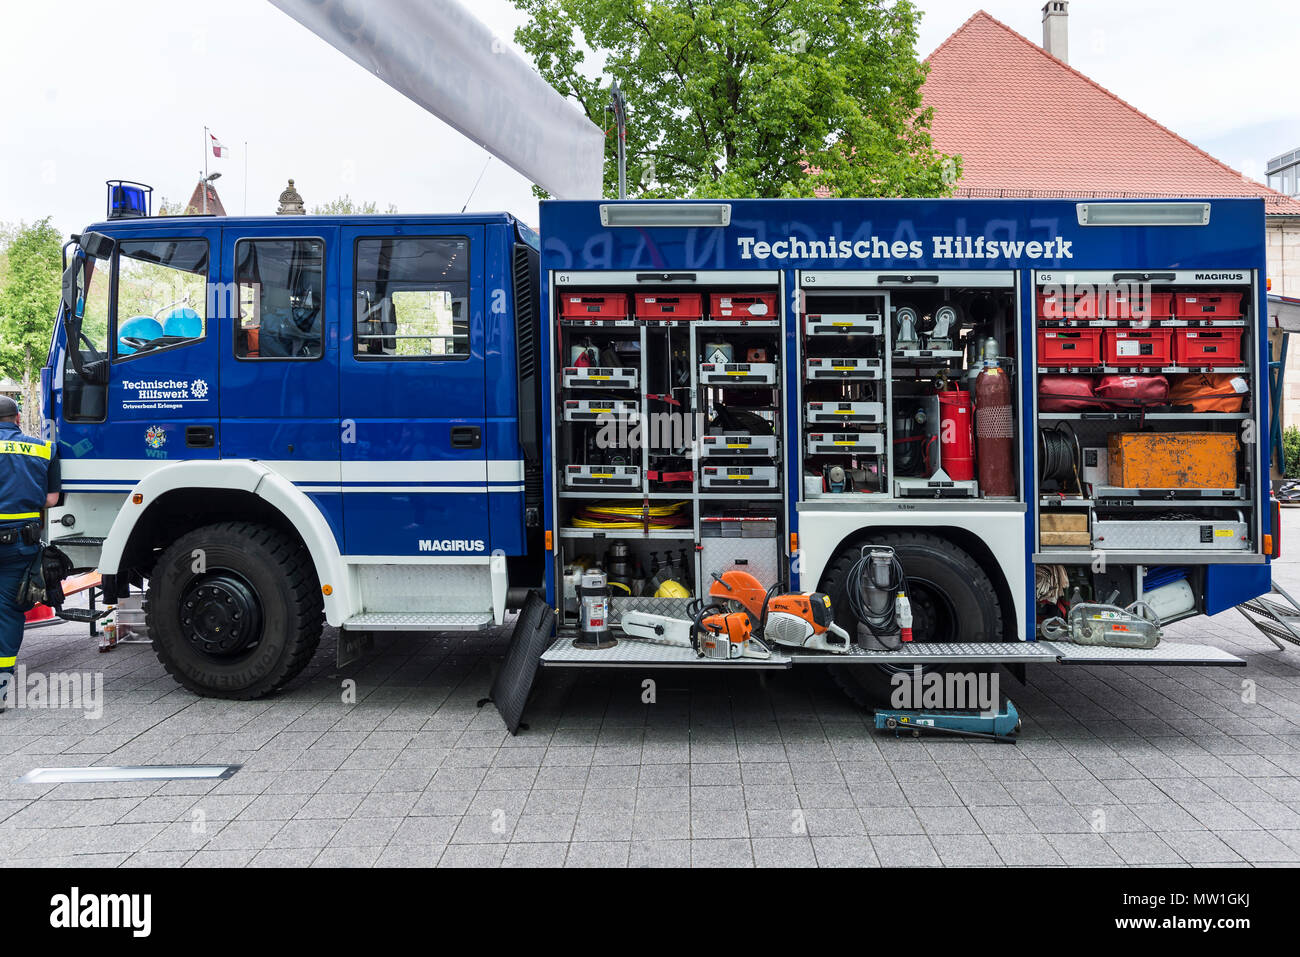 Einsatzwagen, technical relief organization, civil protection and disaster control organization, Germany Stock Photo